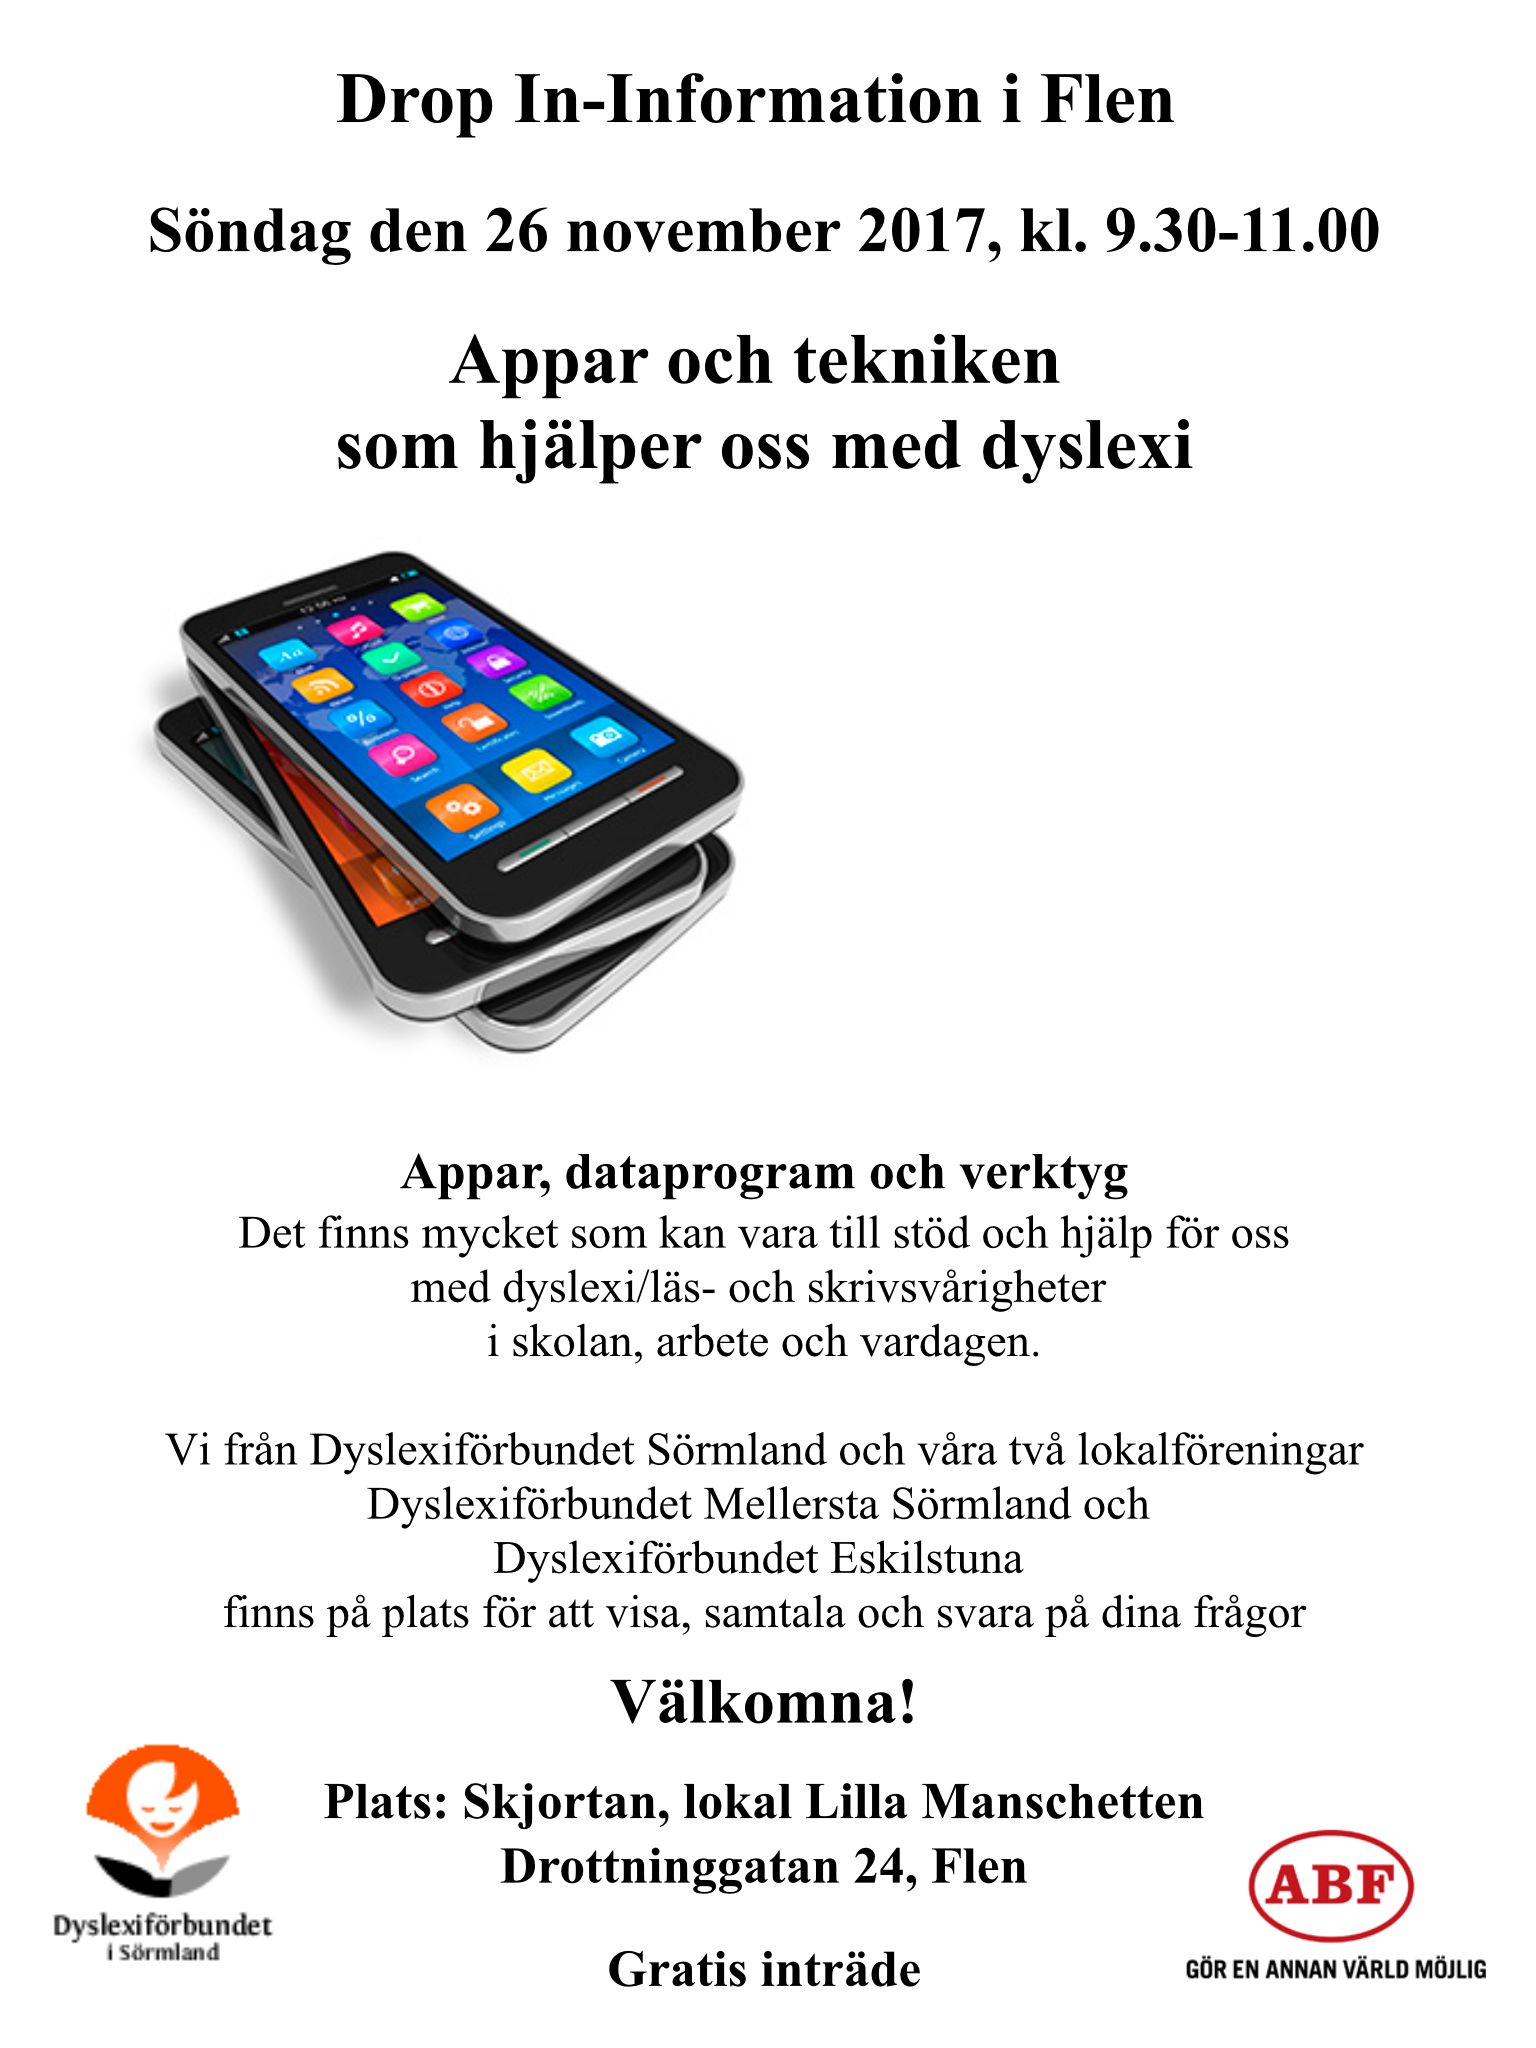 Drop In-Information i Flen